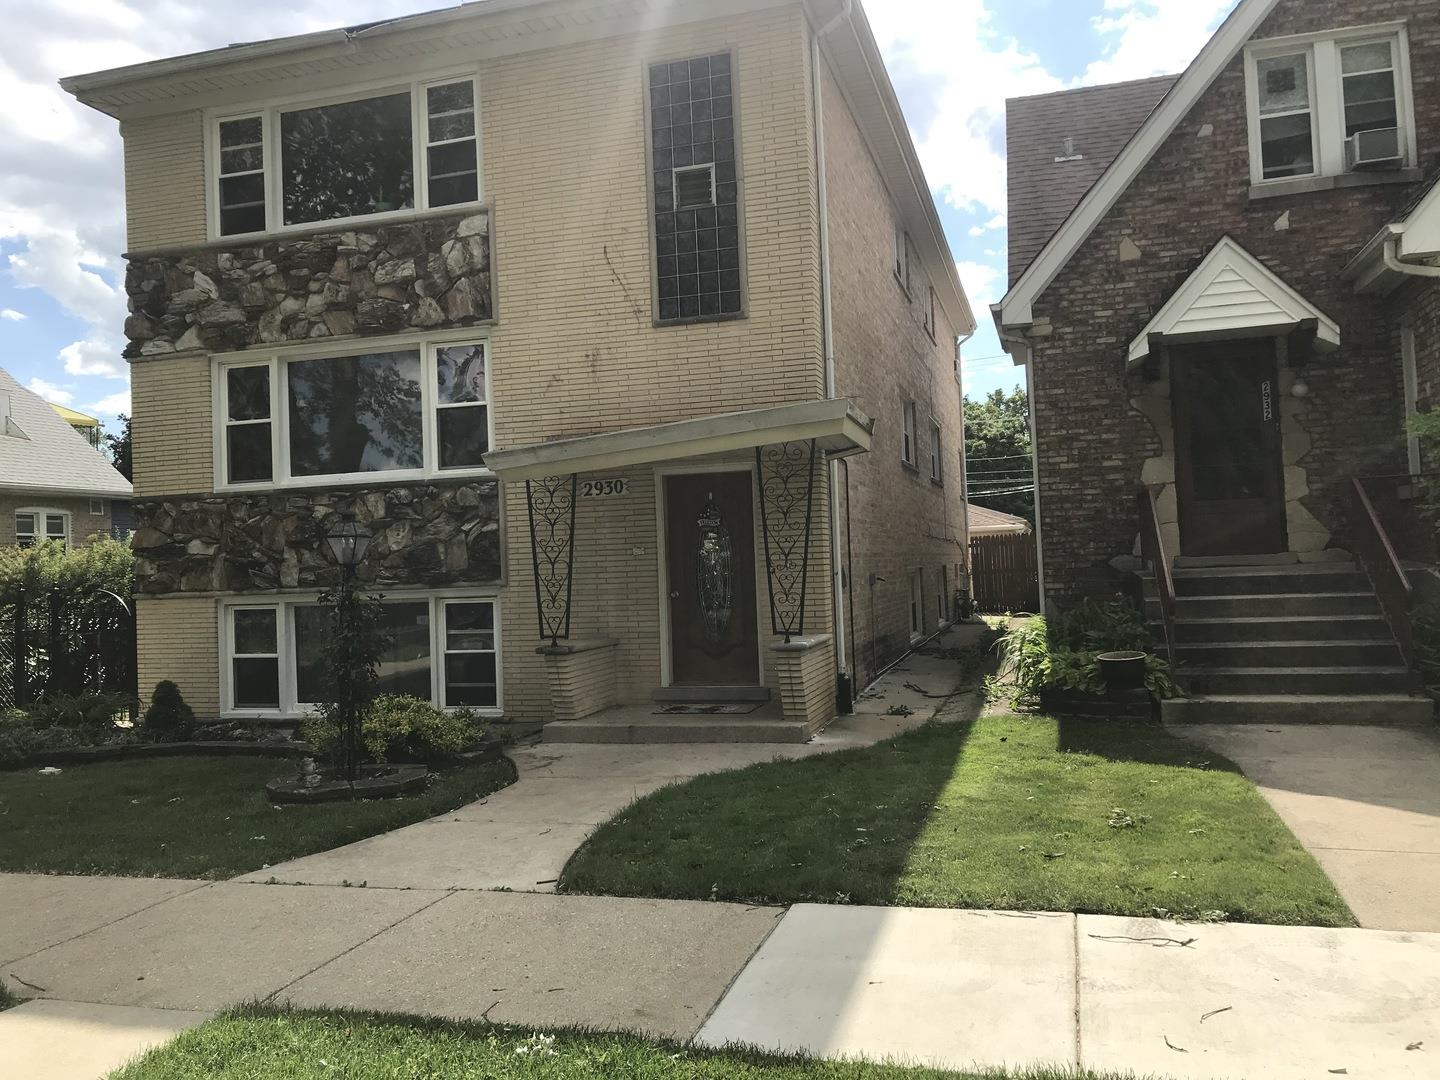 2930 N 75th Court #1ST, Elmwood Park, IL 60707 - #: 10751459